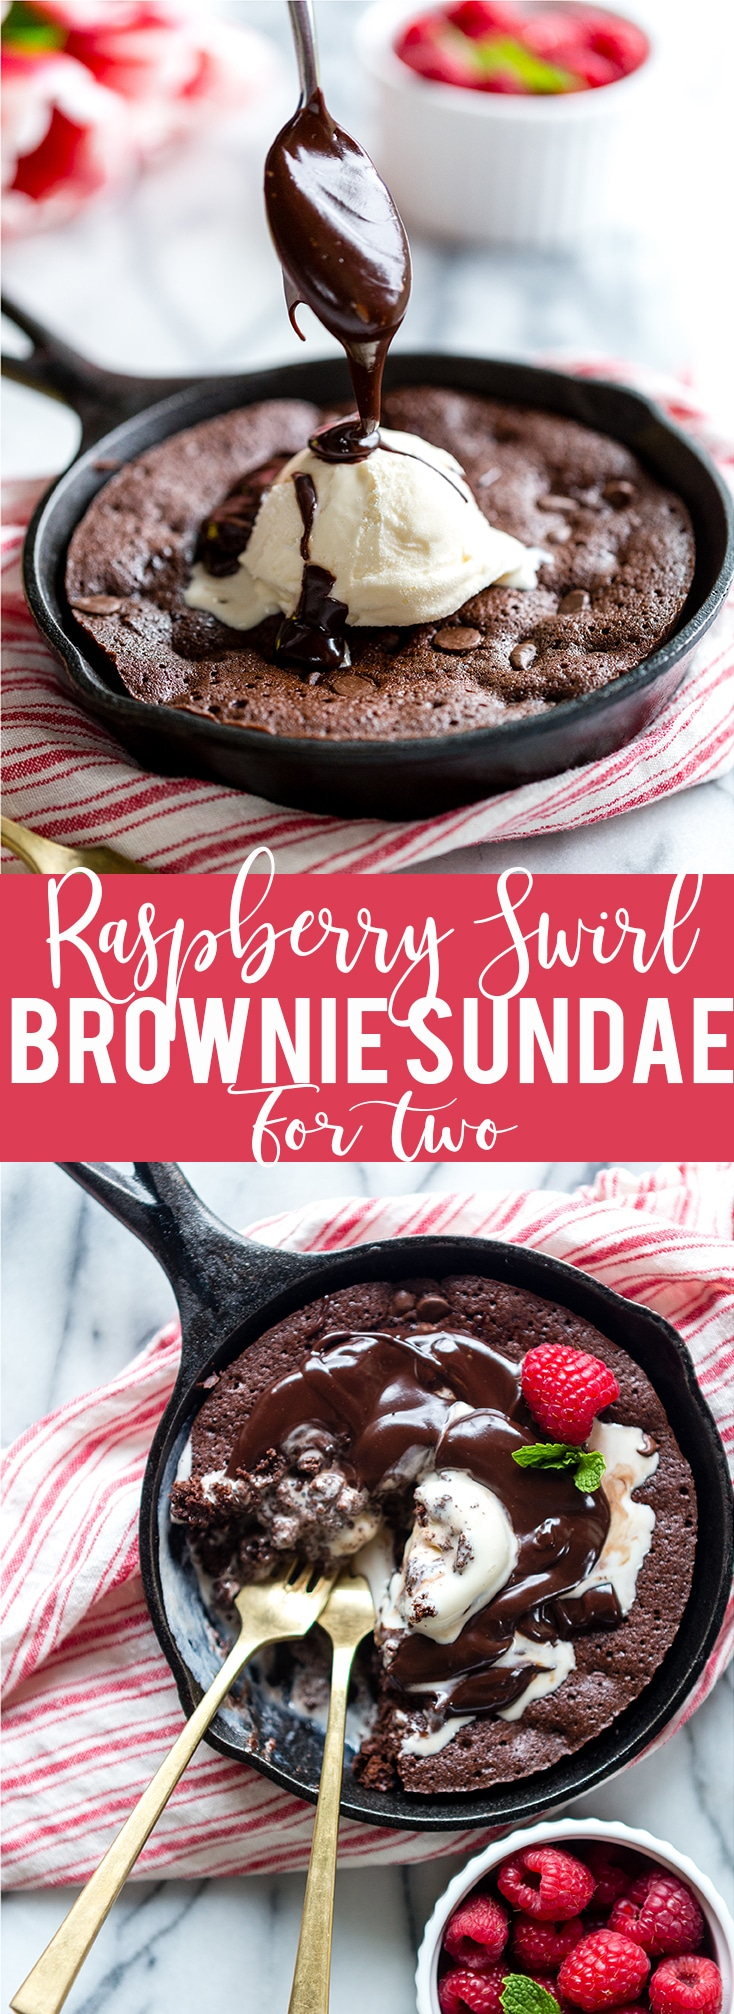 Raspberry Swirl Brownie Sundae for Two. It's the best small batch fudgy brownie for two ever! Small batch brownie for two   Skillet brownie   Brownie Sundae   Brownie Sunday   Valentine's Day Dessert for Two   One bowl brownies for two   Easy Valentine's Dessert   Easy Skillet Brownie Recipe for Two   Small Batch Baking   best fudgy brownie